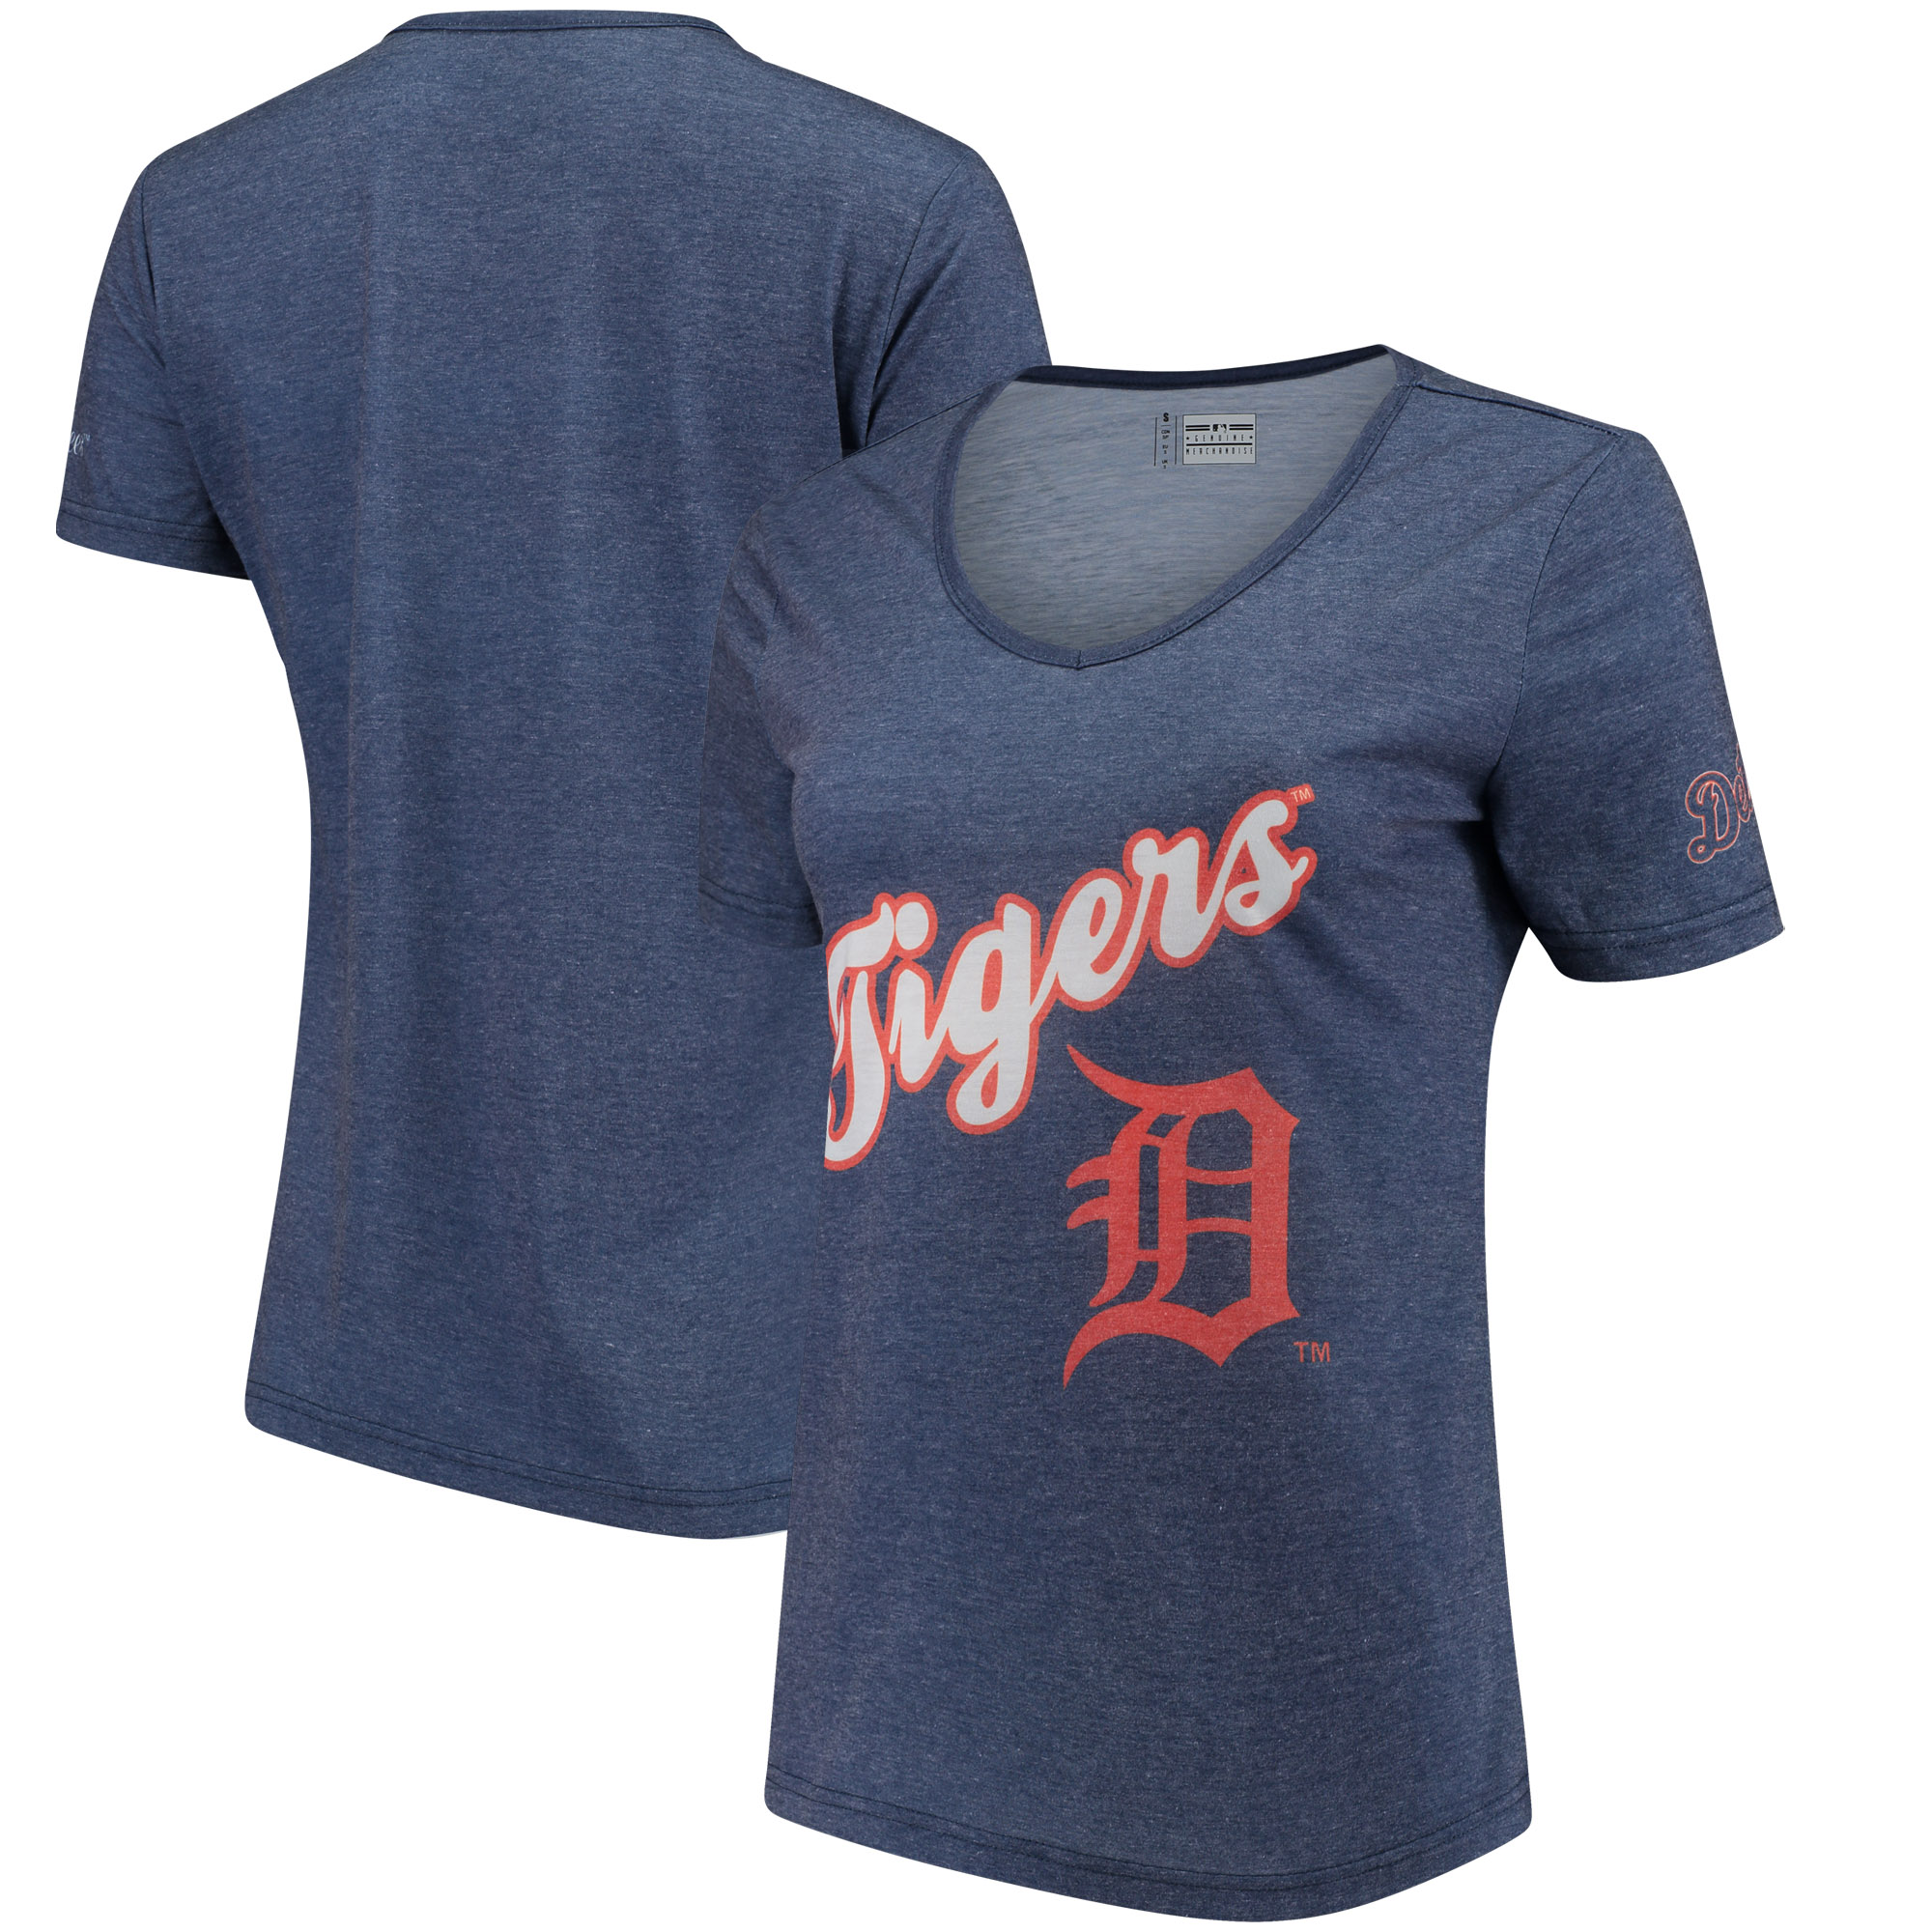 Detroit Tigers Women's Wordmark V-Neck T-Shirt - Navy